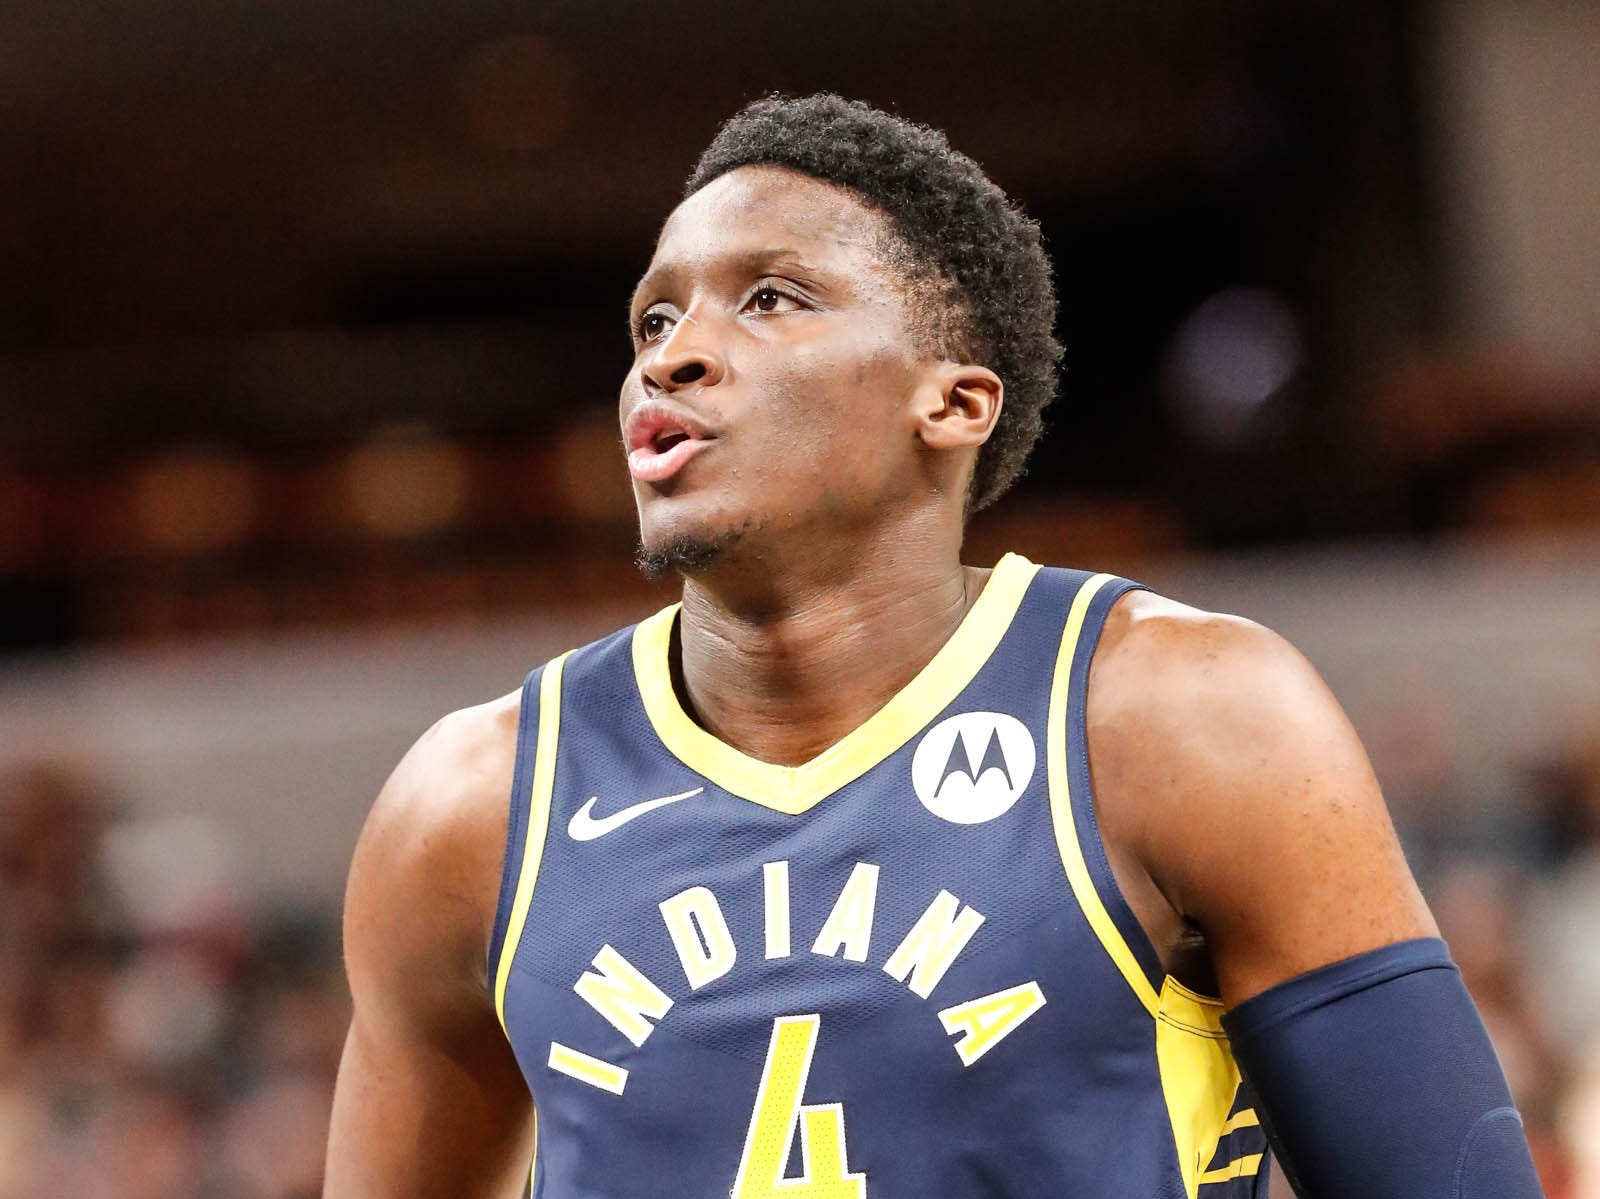 Indiana Pacers guard Victor Oladipo (4) shoots a free throw during a game between the Pacers and Hornets at Bankers Life Fieldhouse on Sunday, Jan. 20, 2019.